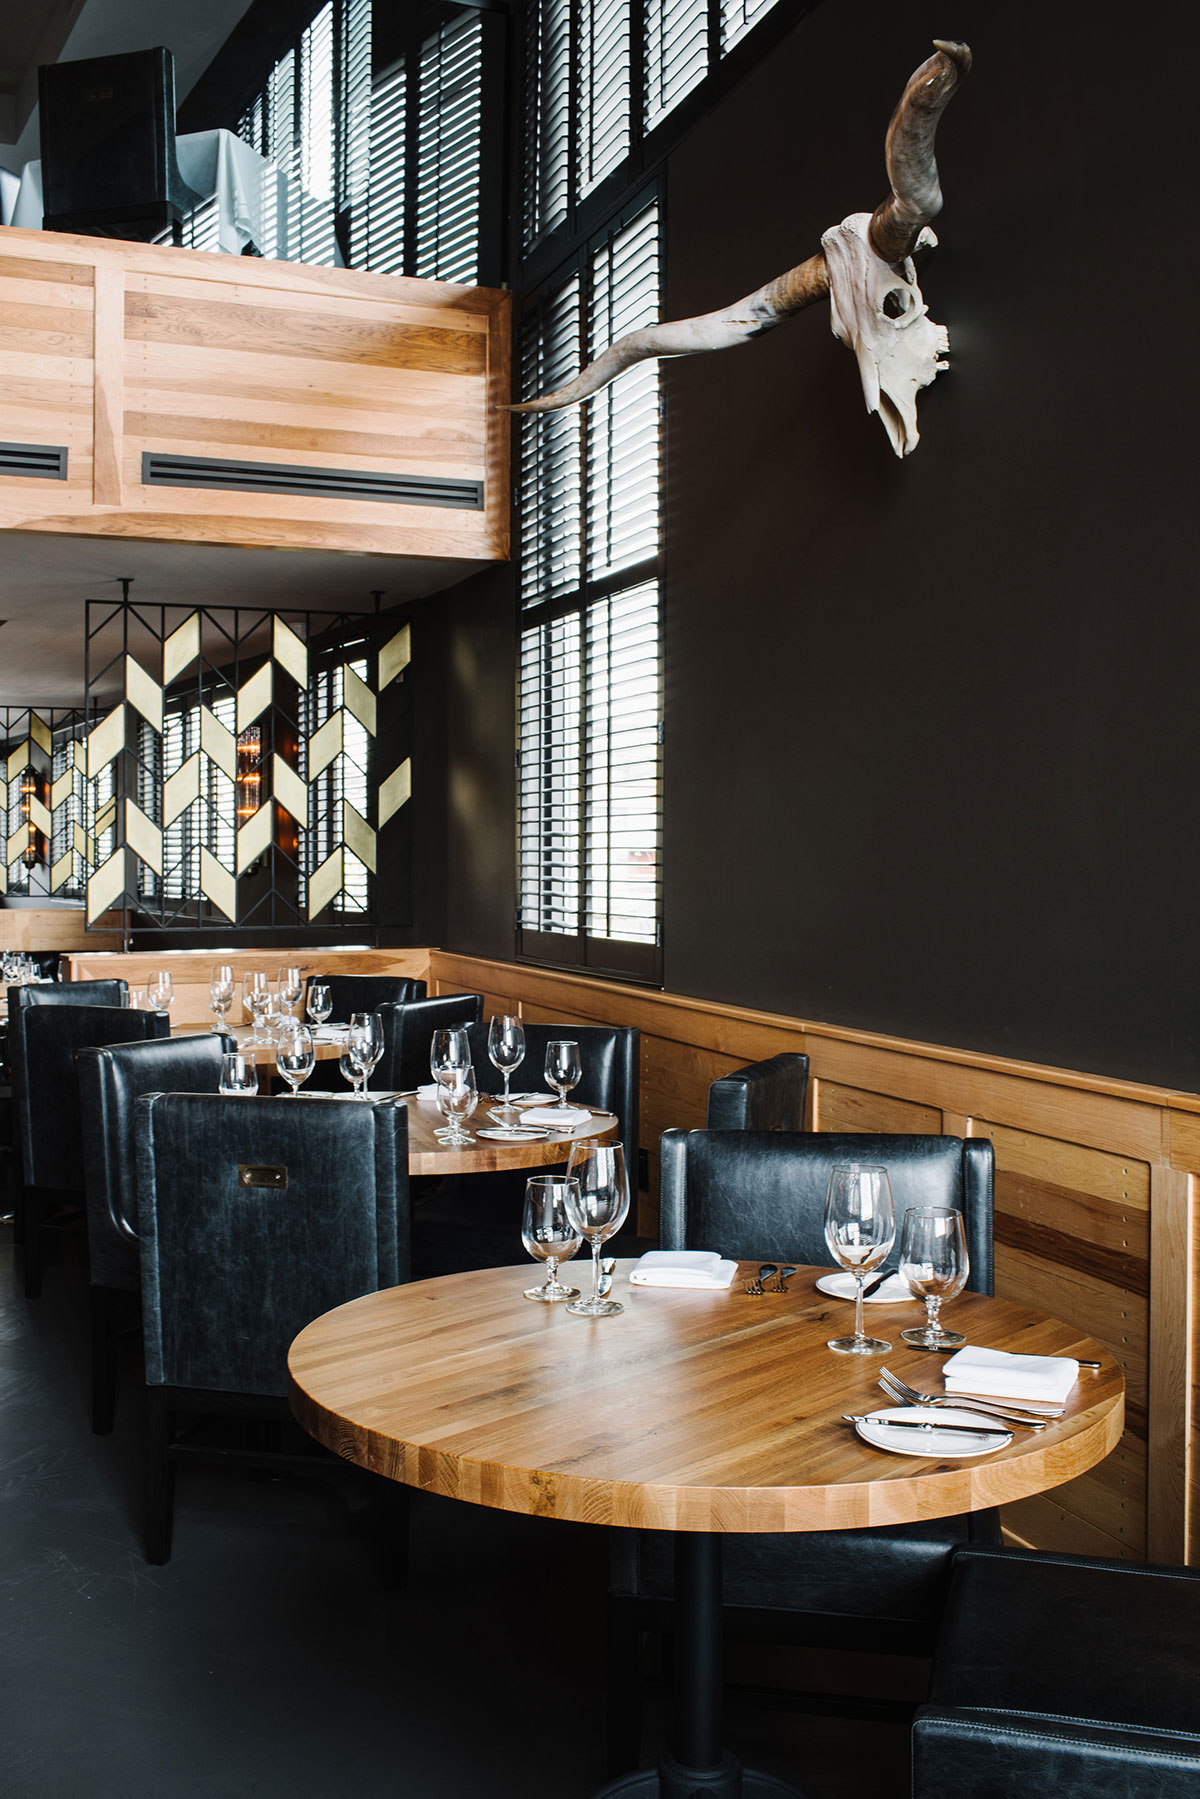 Double height dining area of the American Cut Bar & Grill project located at 495 Sylvan Avenue in Englewood Cliffs, New Jersey designed by the architecture studio Danny Forster & Architecture